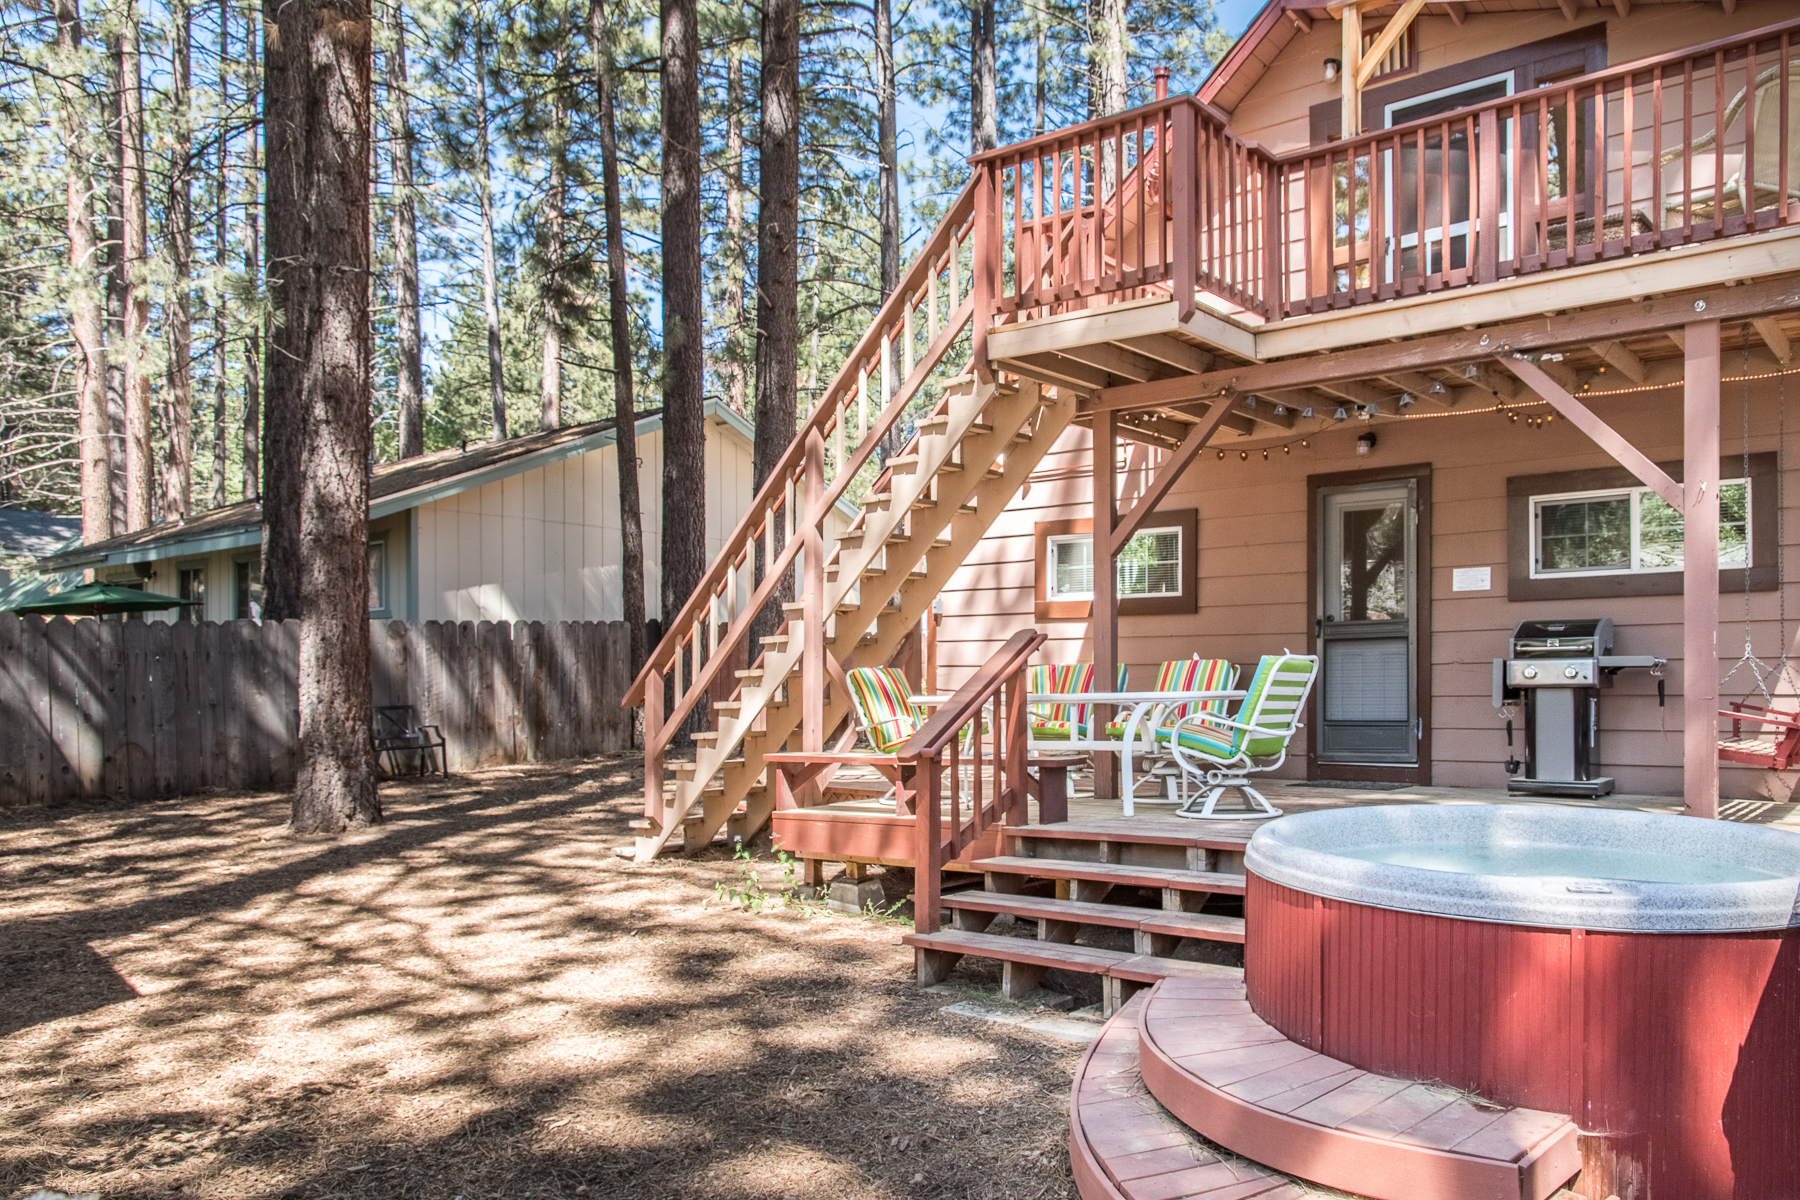 home vacation br rental ourlistings lodge cabins cabin w tub tahoe hot osage table luxury lake rentals searchresults executive pool wifi